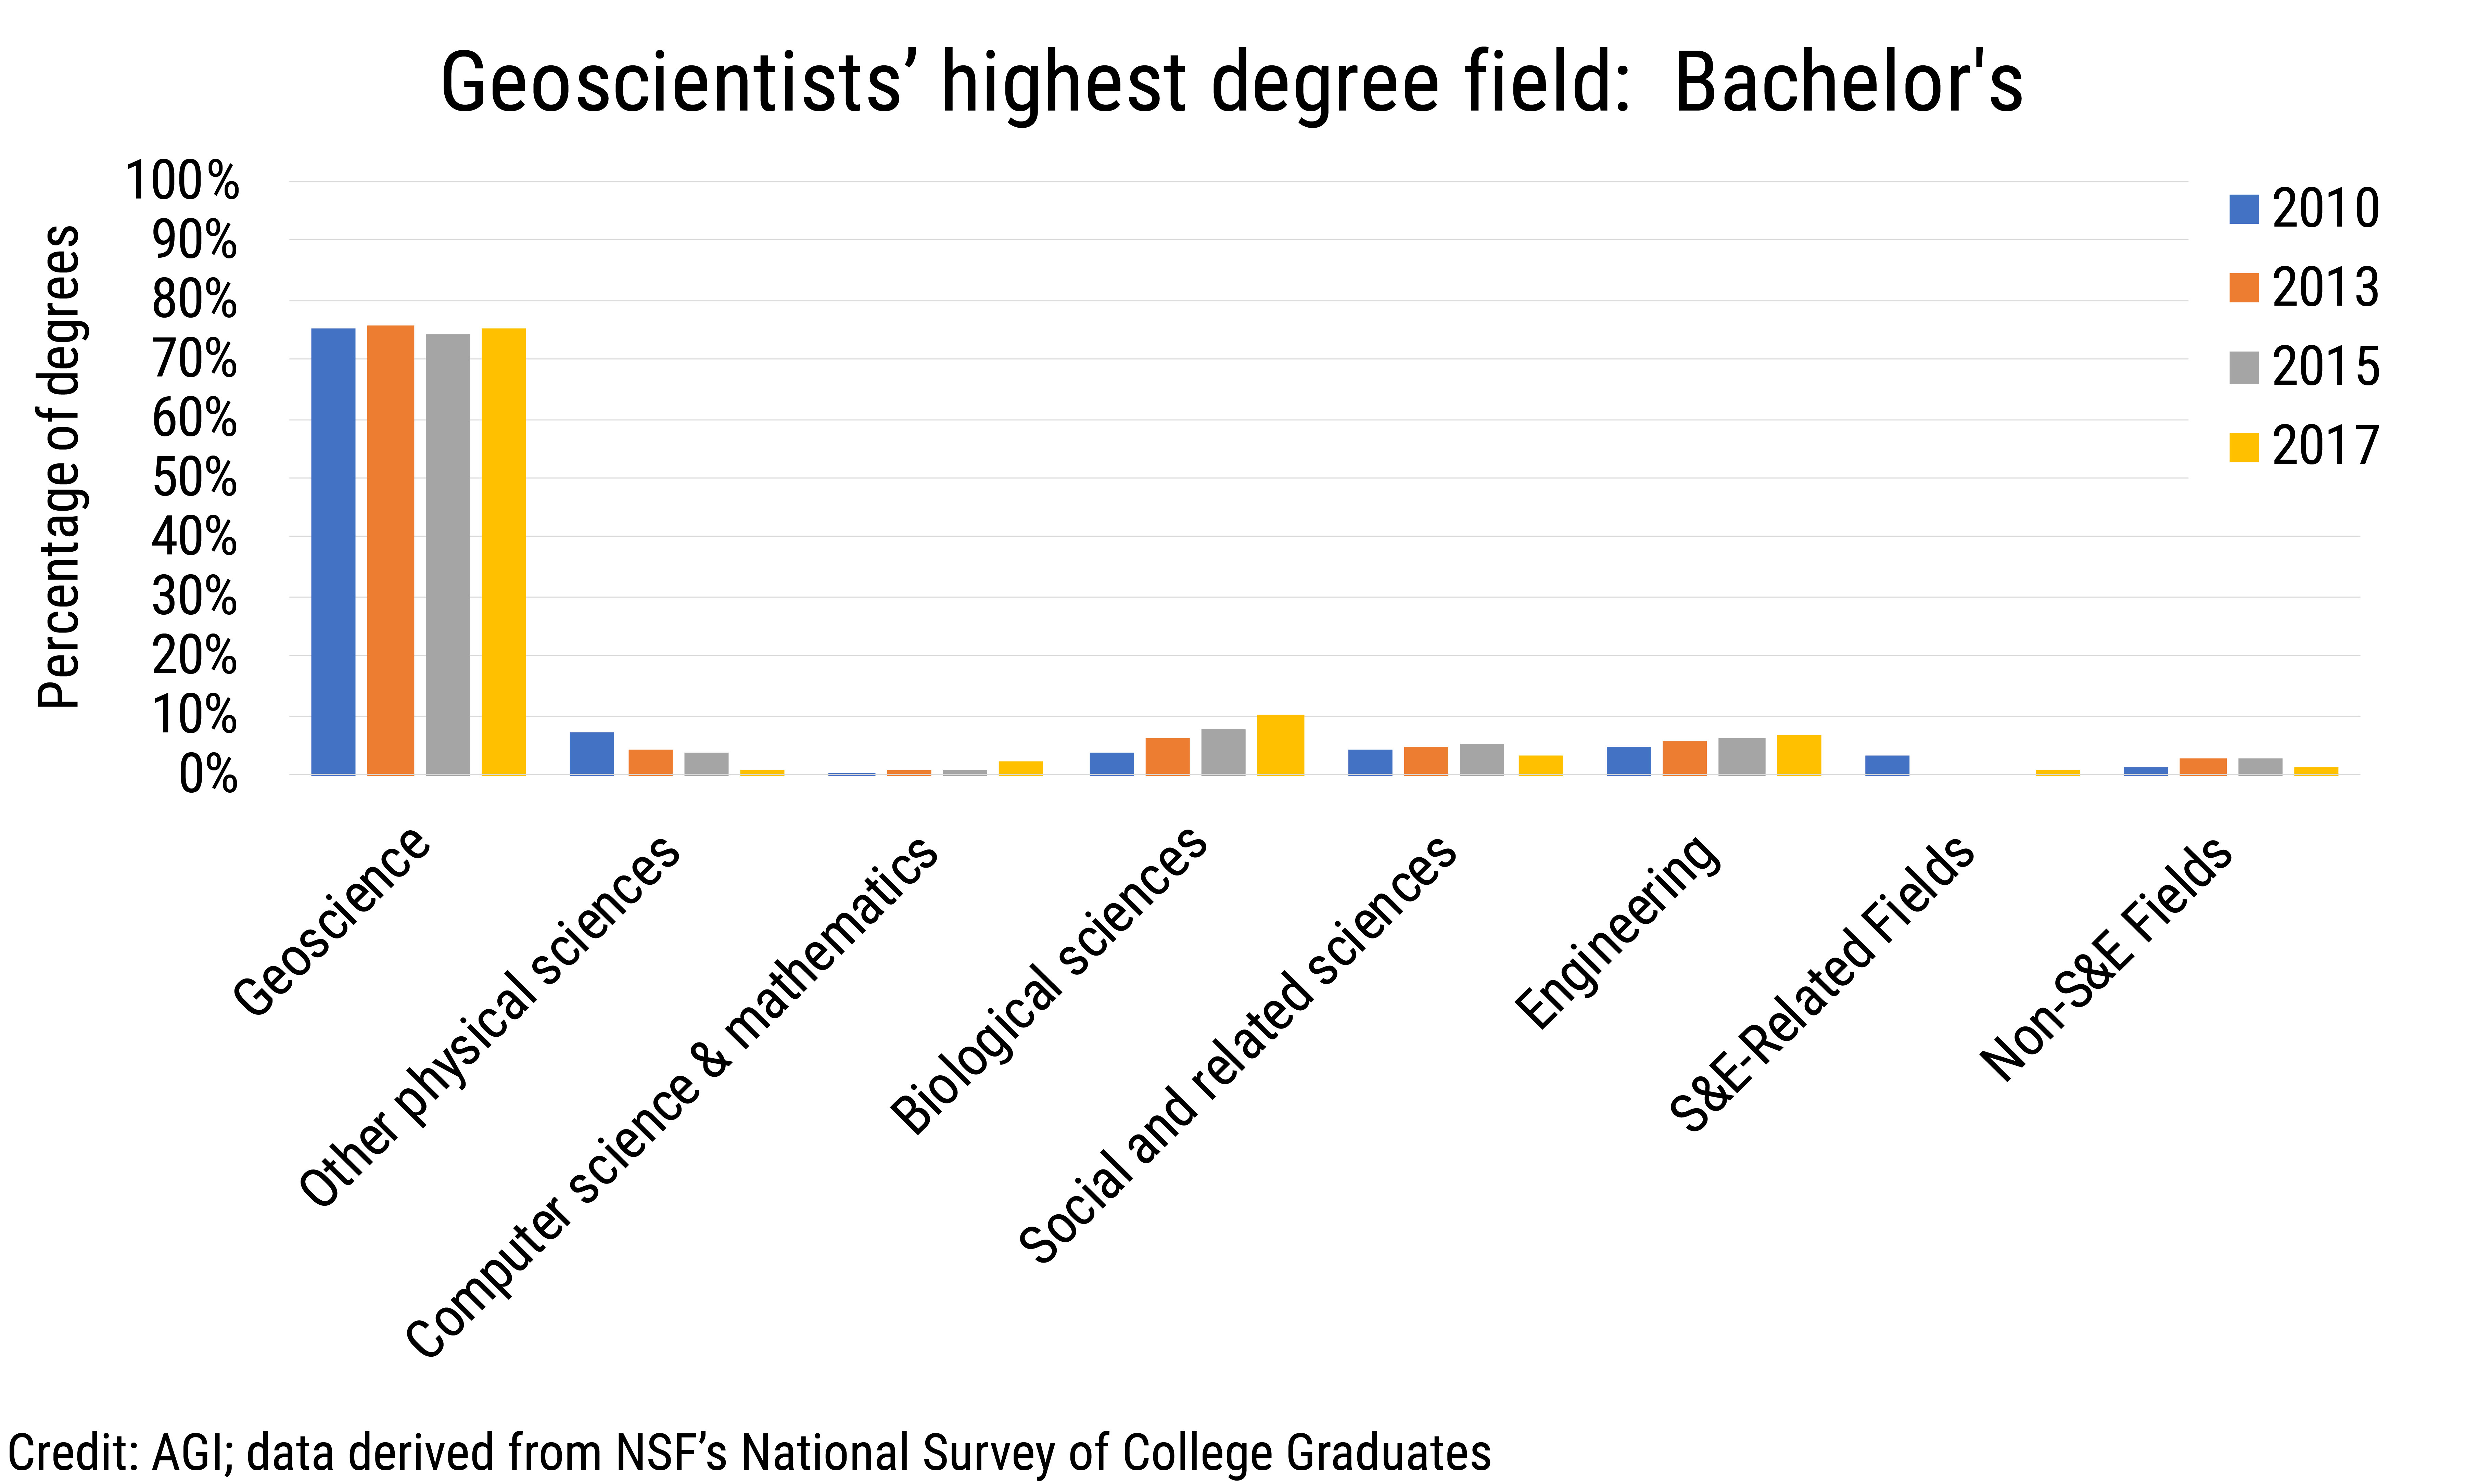 Data Brief 2019-012 chart01: Geoscientists' highest degree field: Bachelor's (credit: AGI; data derived from NSF NSCG)